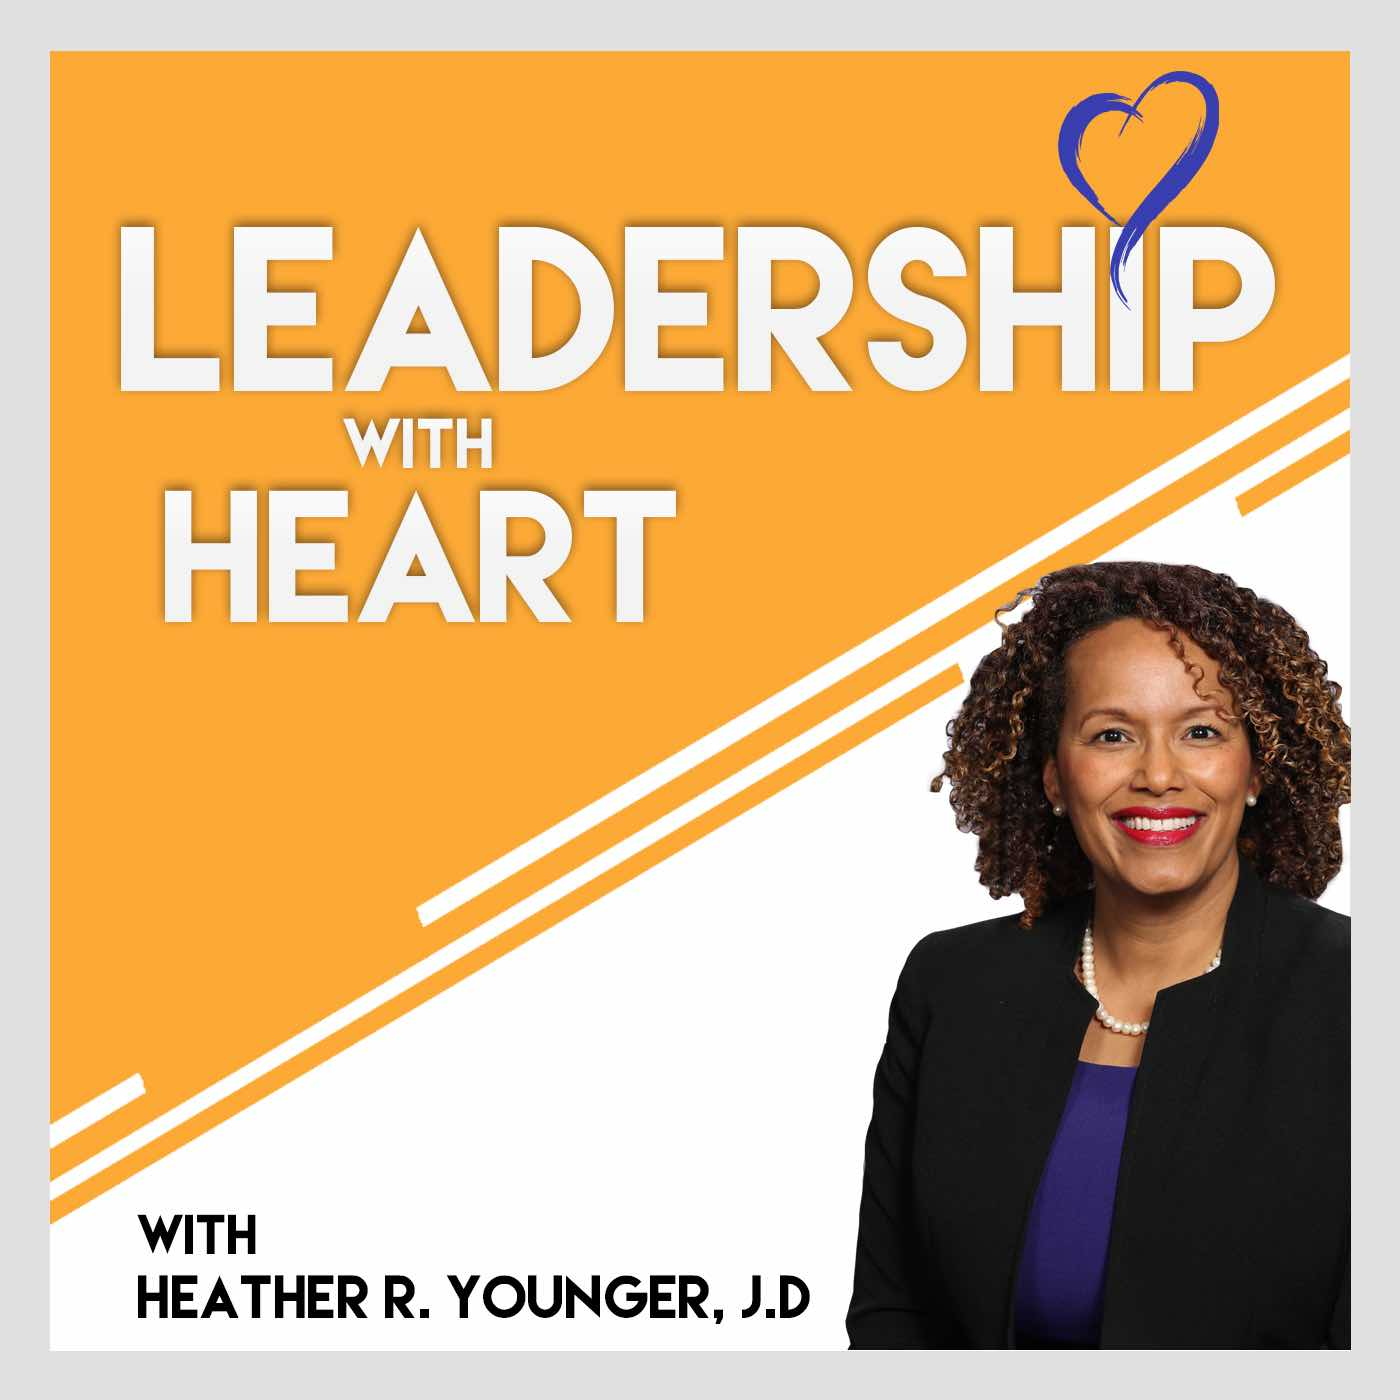 135: Leaders with Heart Lead with Humility